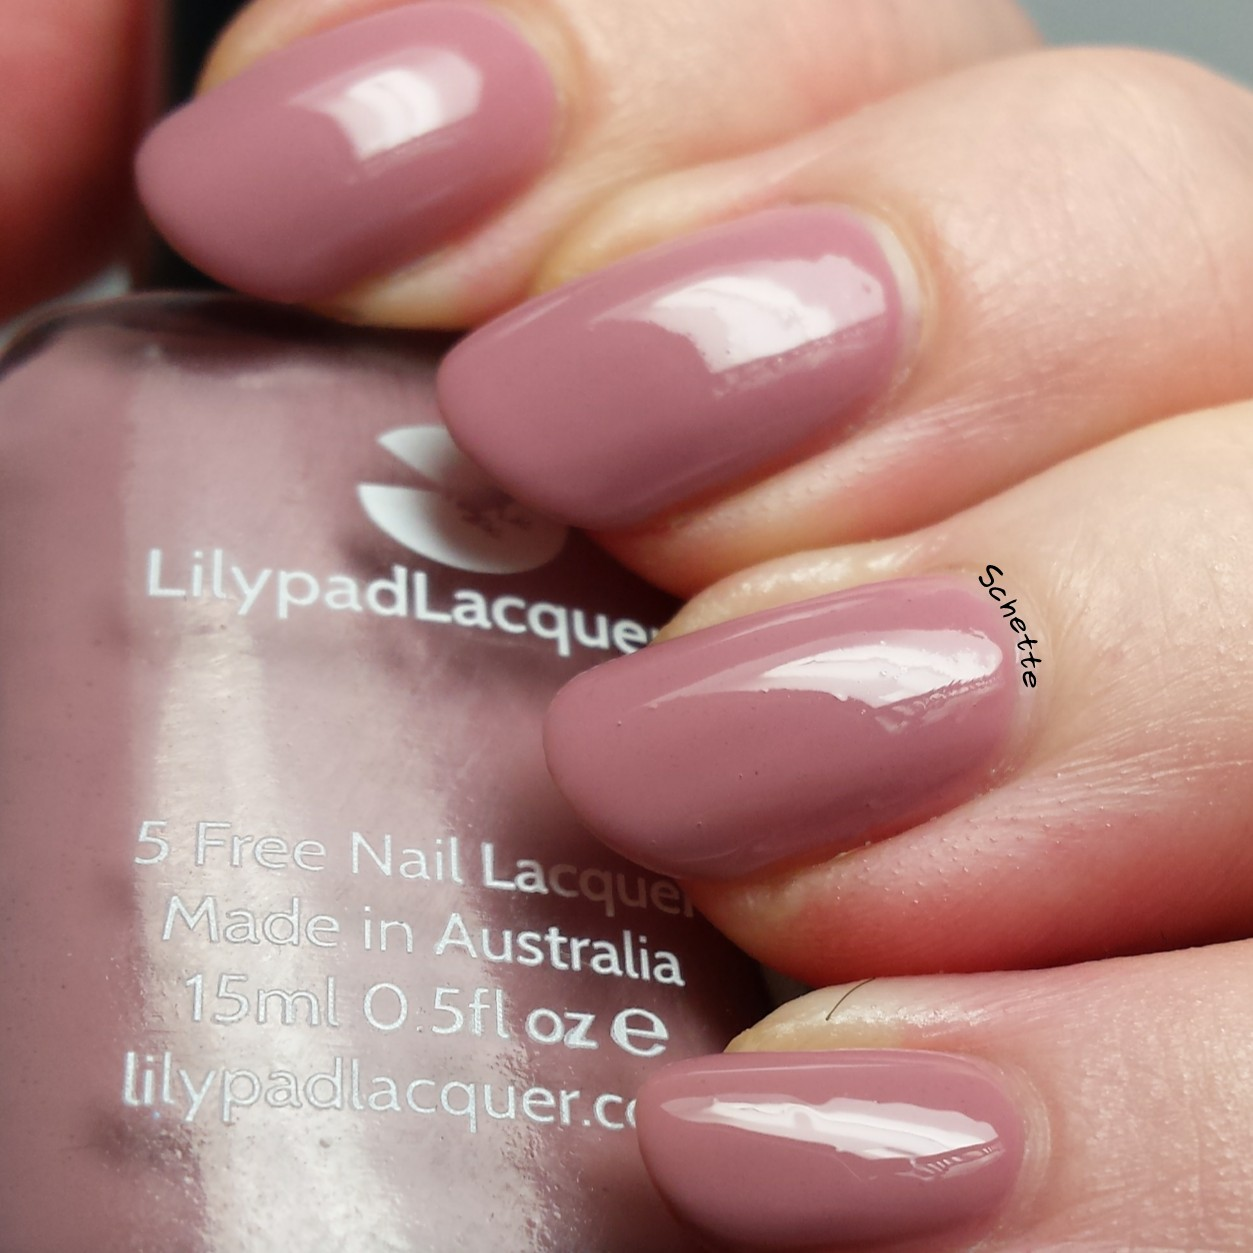 Lilypad Lacquer : The Nude and Neutral Collection Part 2